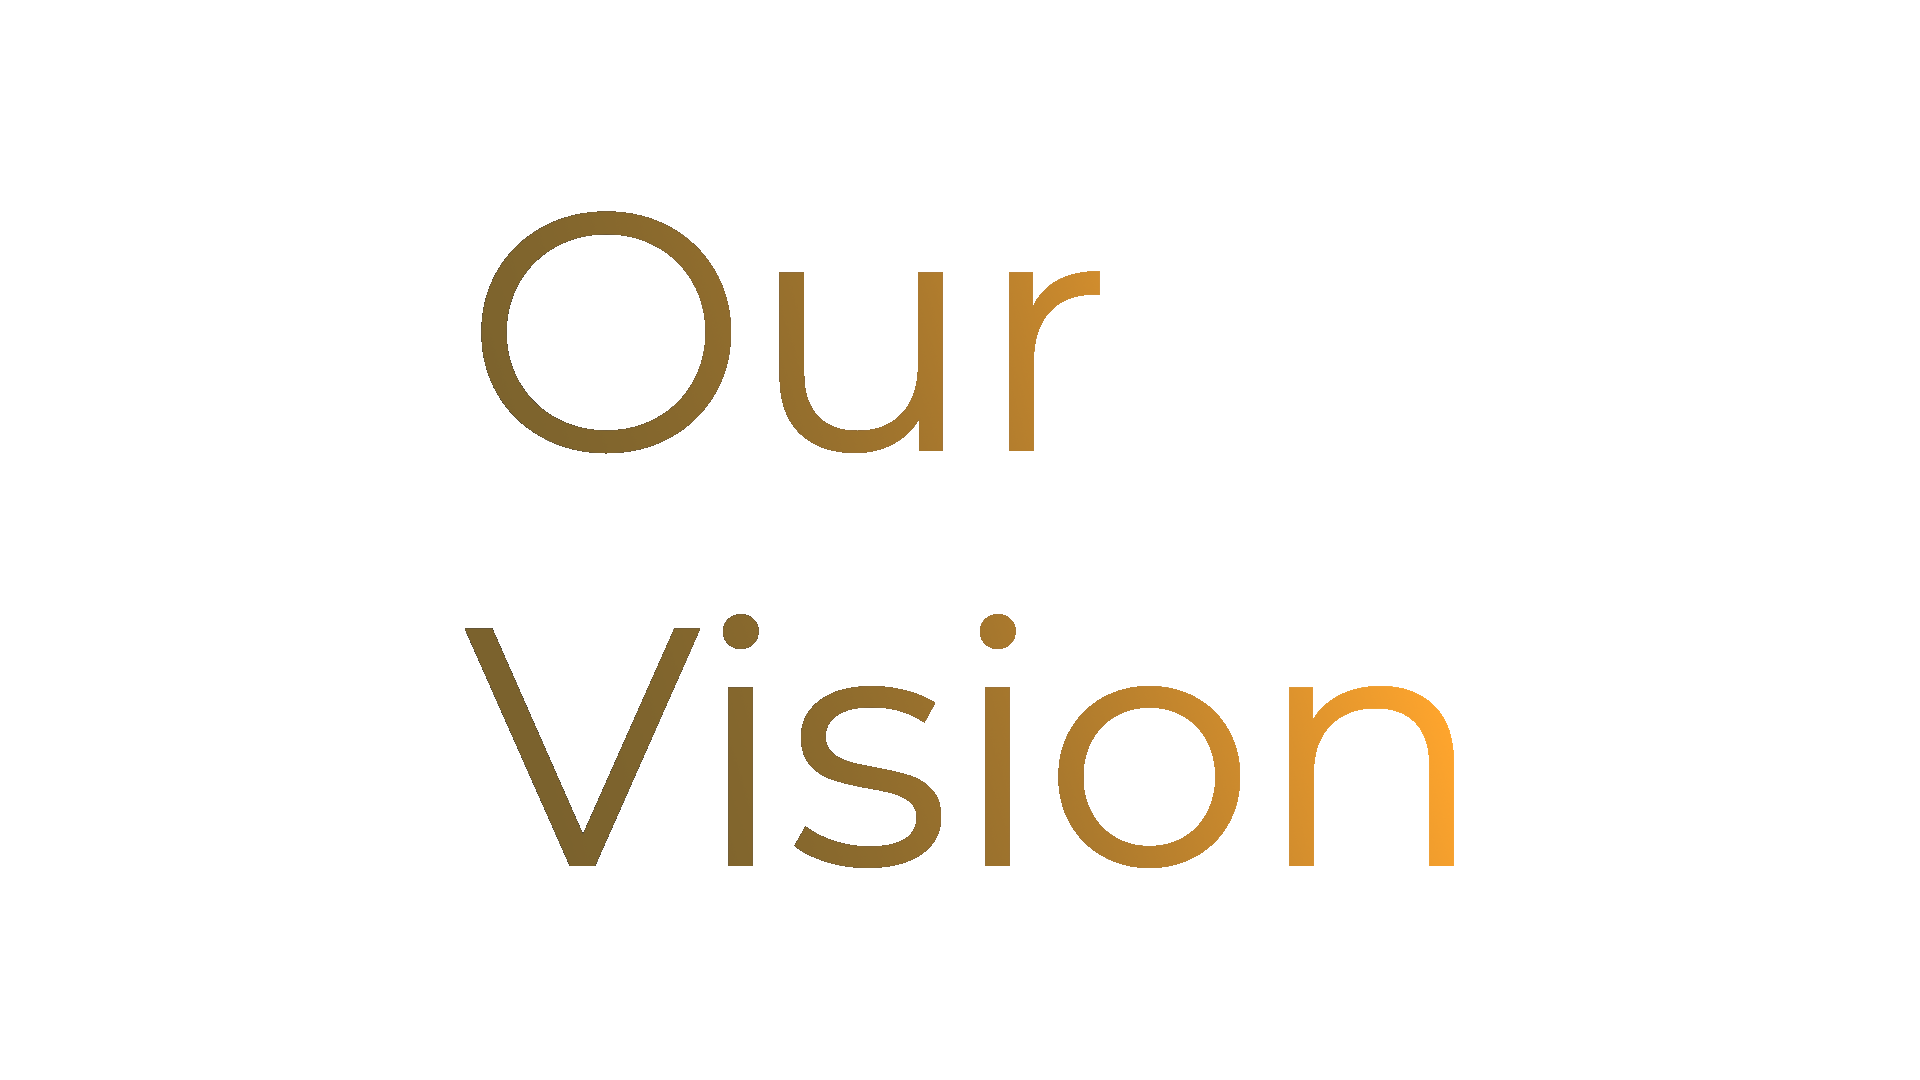 Our Vision text